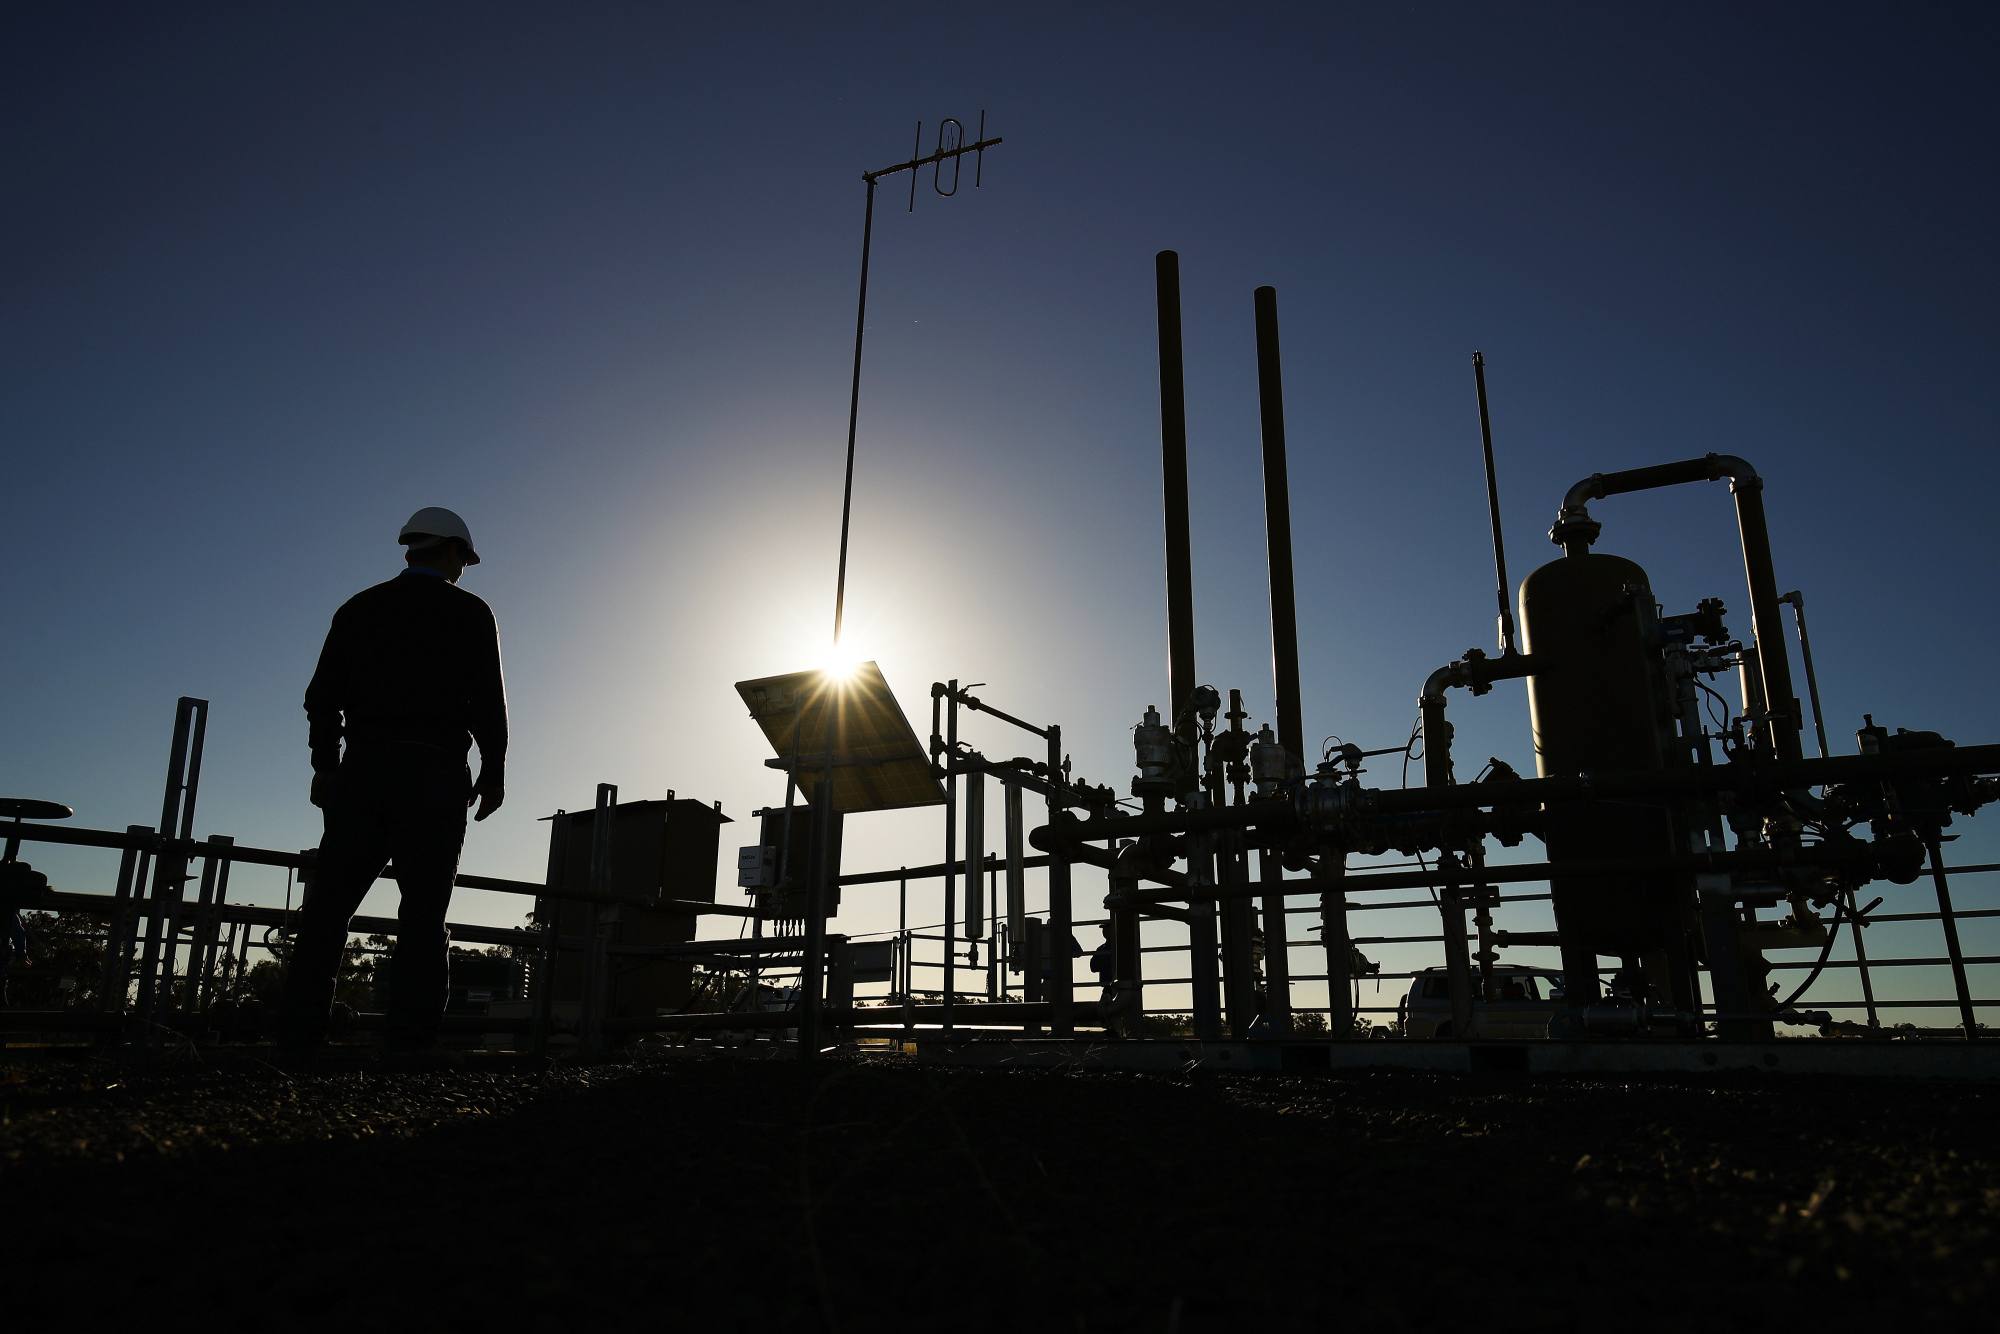 A Santos Ltd. pilot well operates on a farm property in Narrabri, Australia, on Thursday, May 25, 2017. A decade after the shale revolution transformed the U.S. energy landscape, Australia — poised to overtake Qatar as the world's biggest exporter of liquefied natural gas — is experiencing its own quandary over natural gas. Photographer: Brendon Thorne/Bloomberg